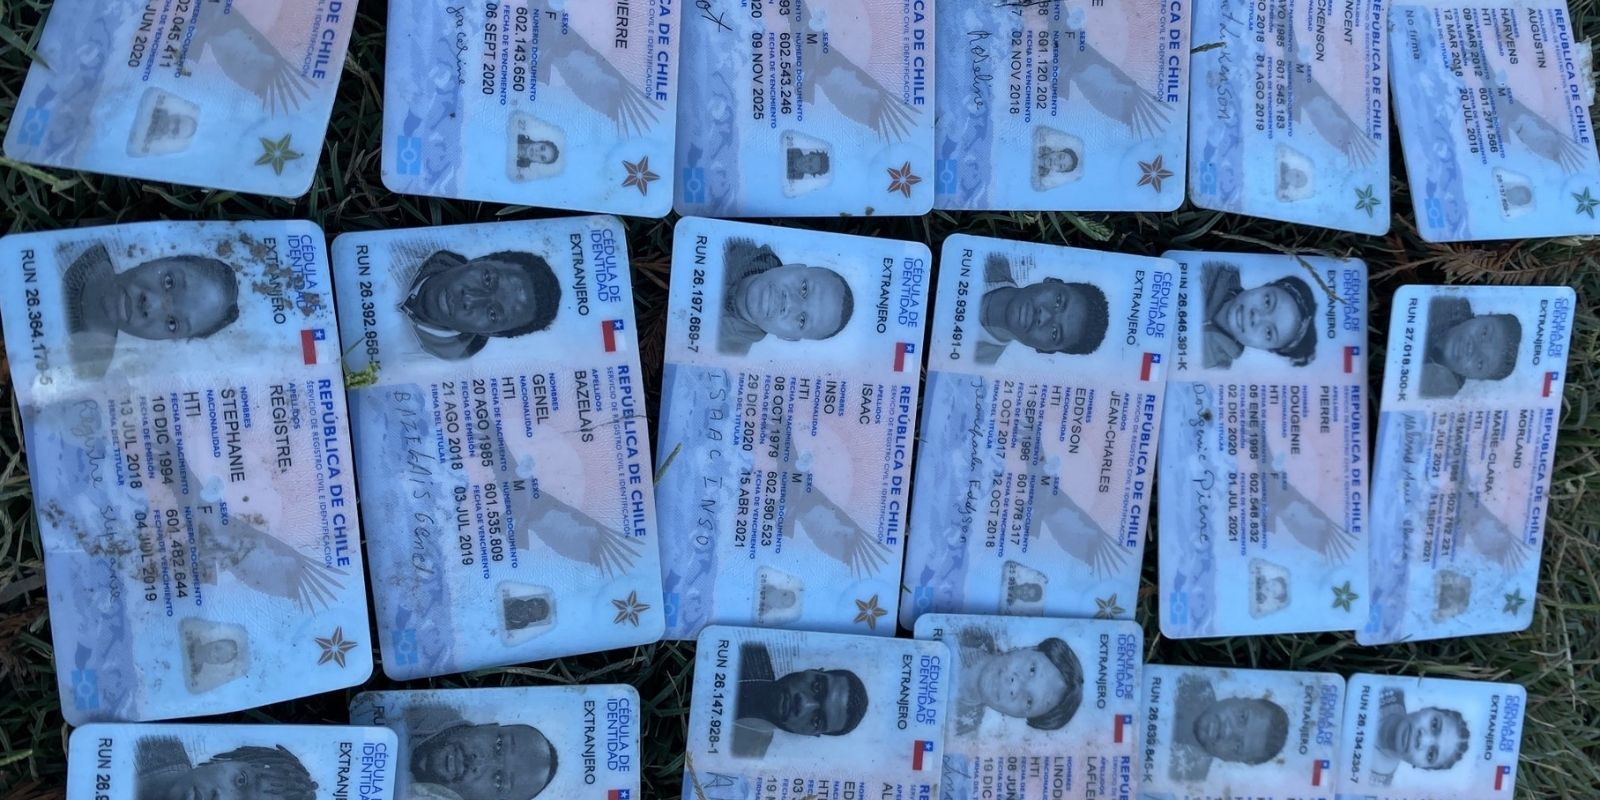 Abandoned IDs found at US border show Haitian migrants held Chilean refugee status: report